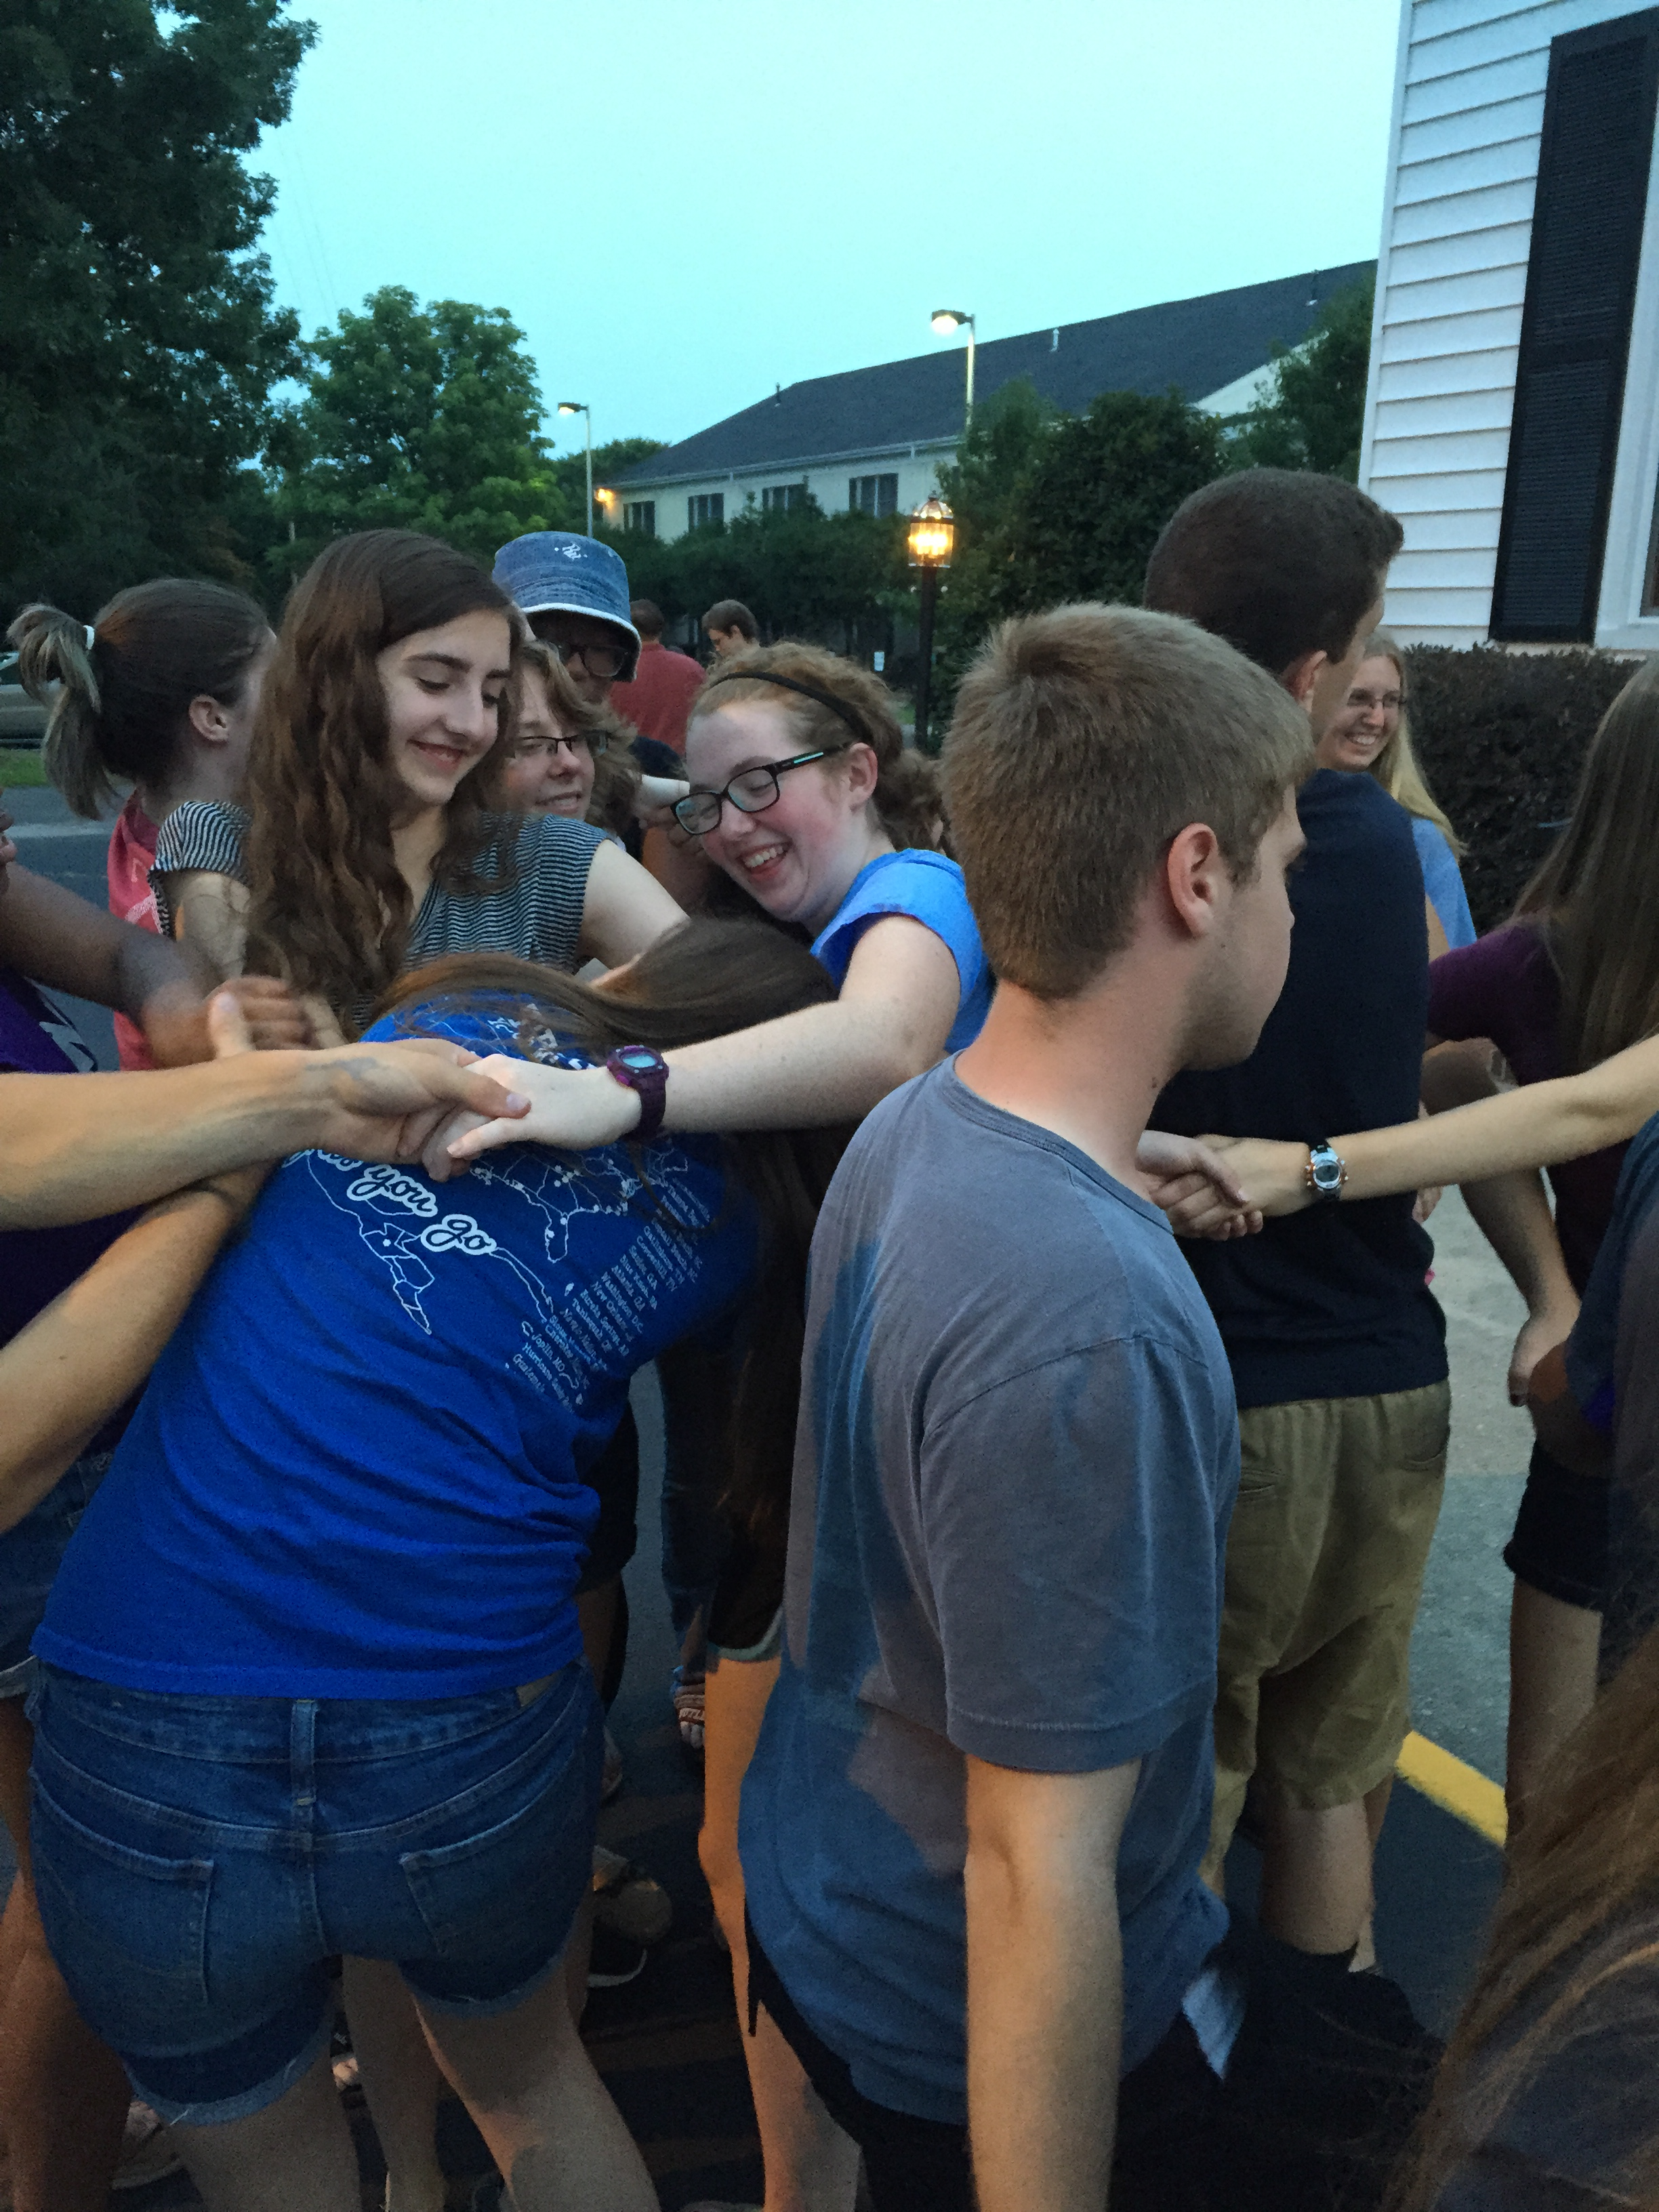 The groups really bond together over a human puzzle ice breaker!